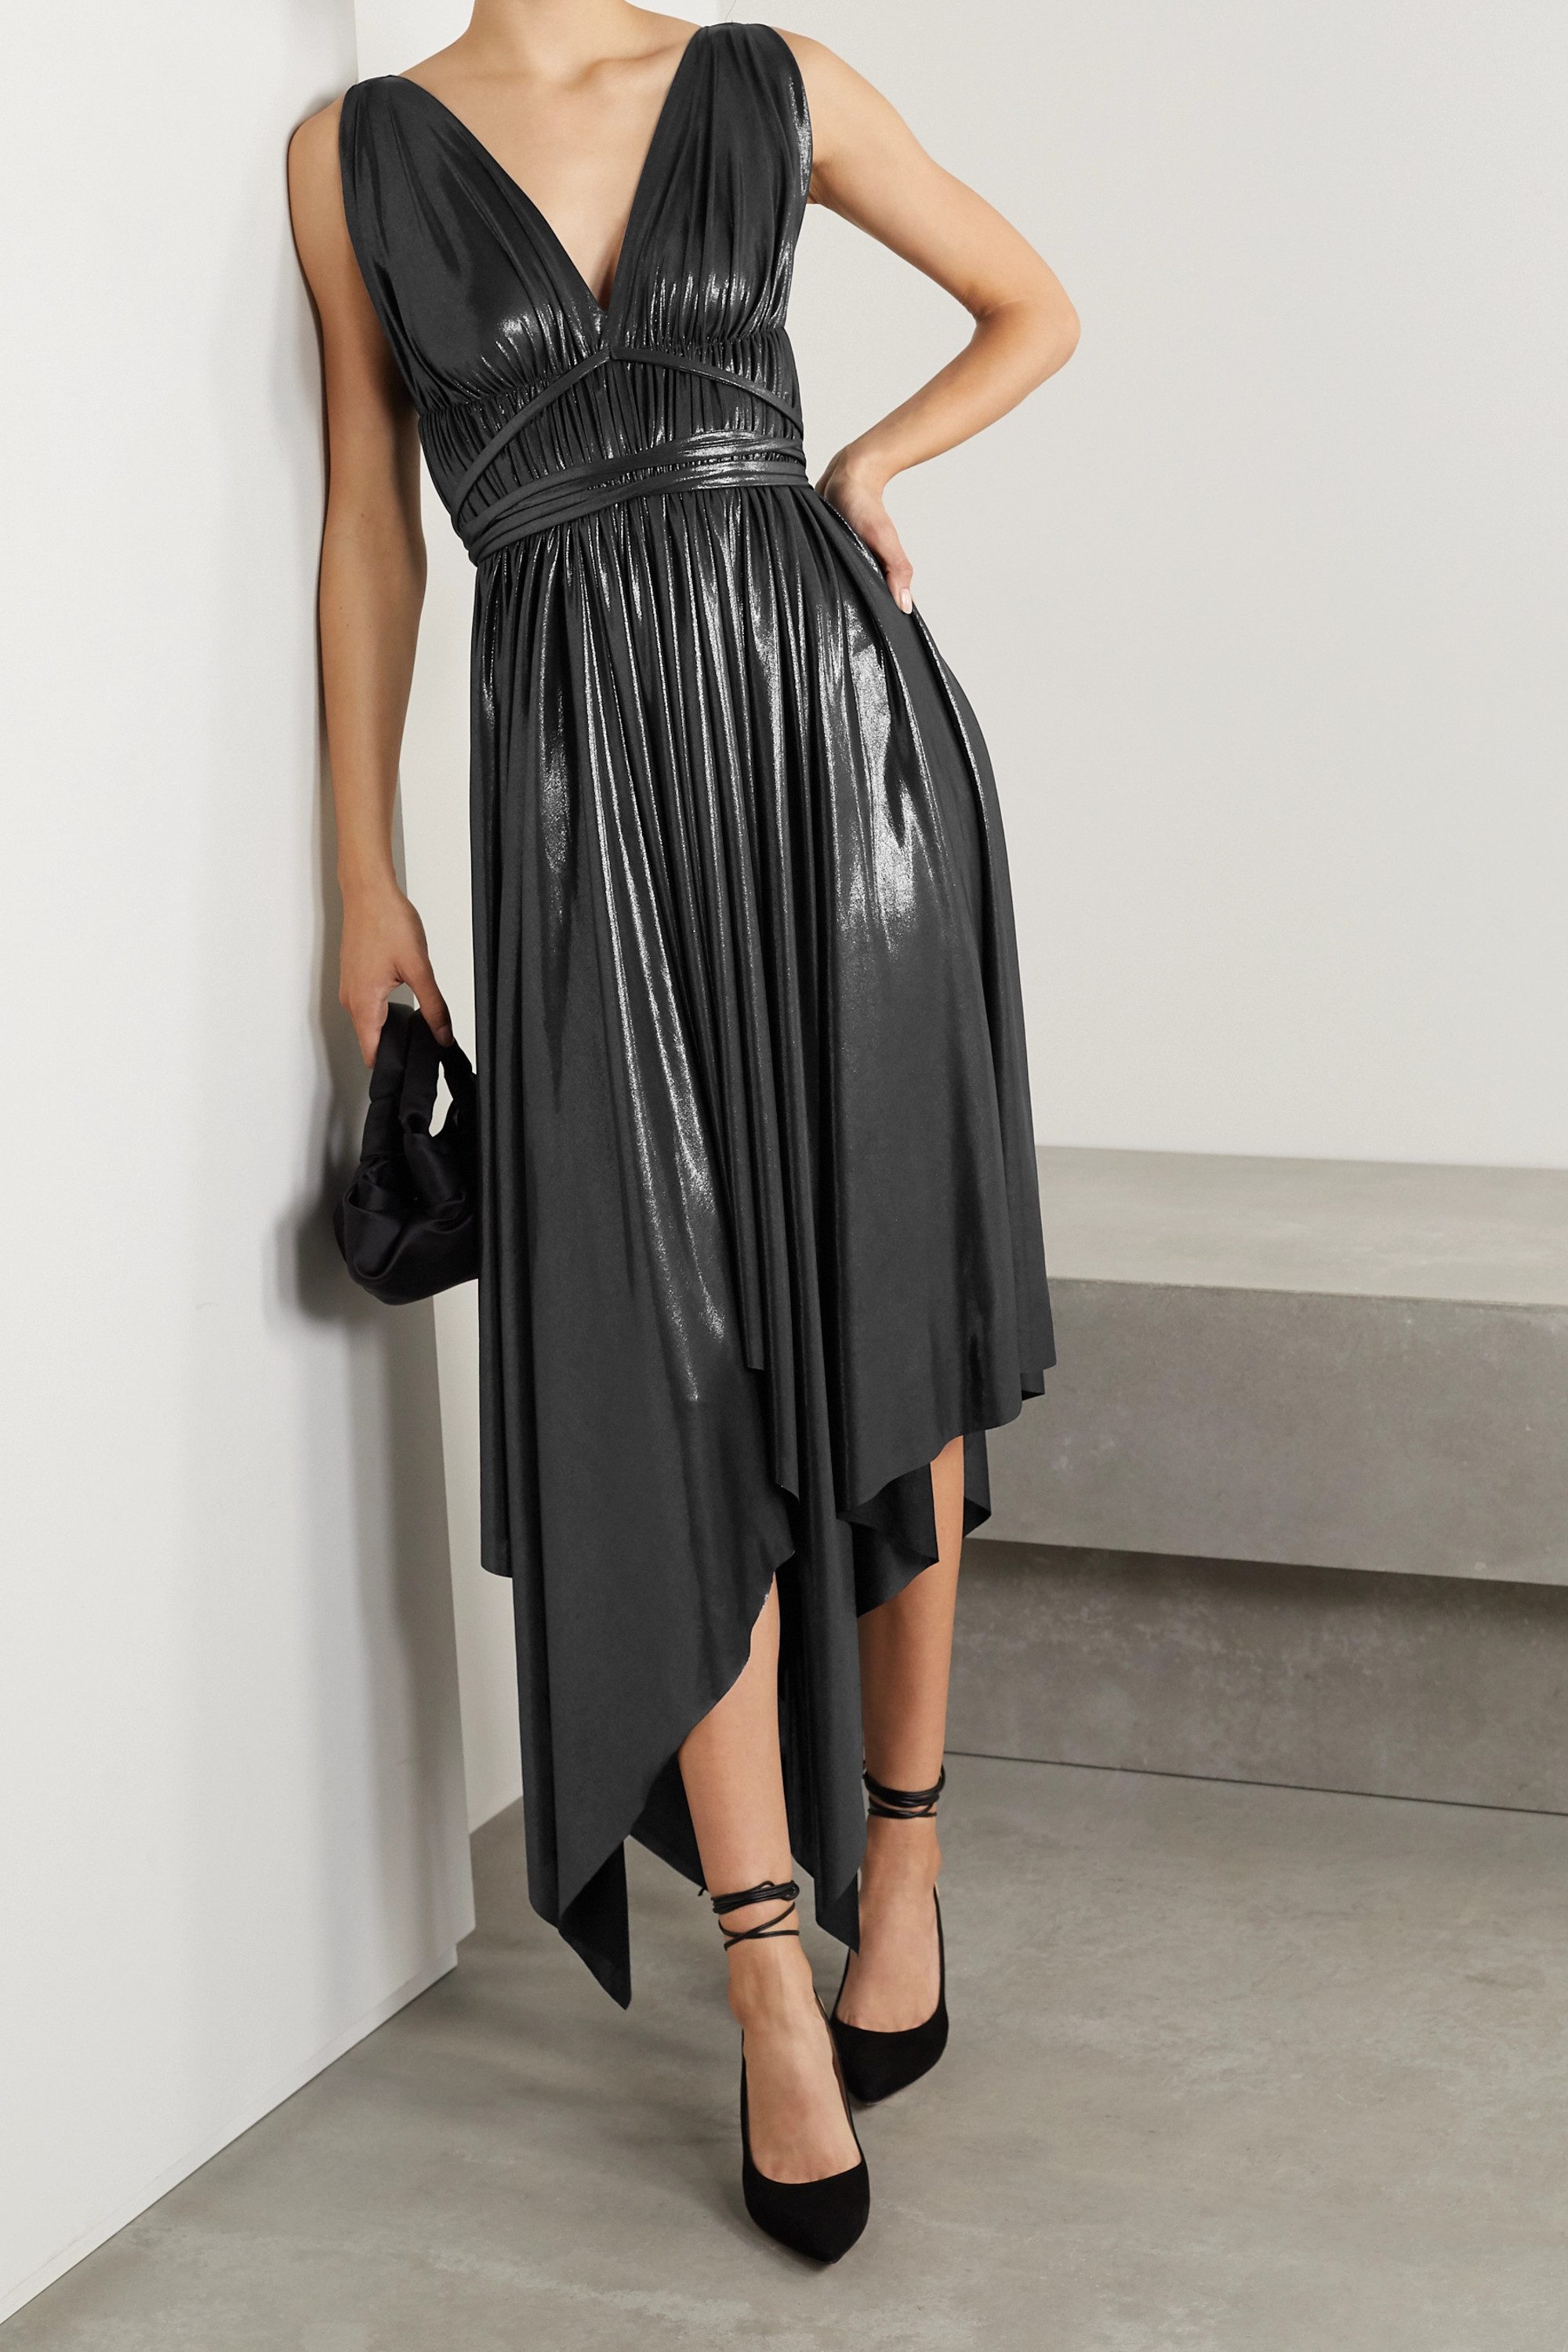 Norma Kamali Goddess asymmetric pleated metallic stretch-jersey dress